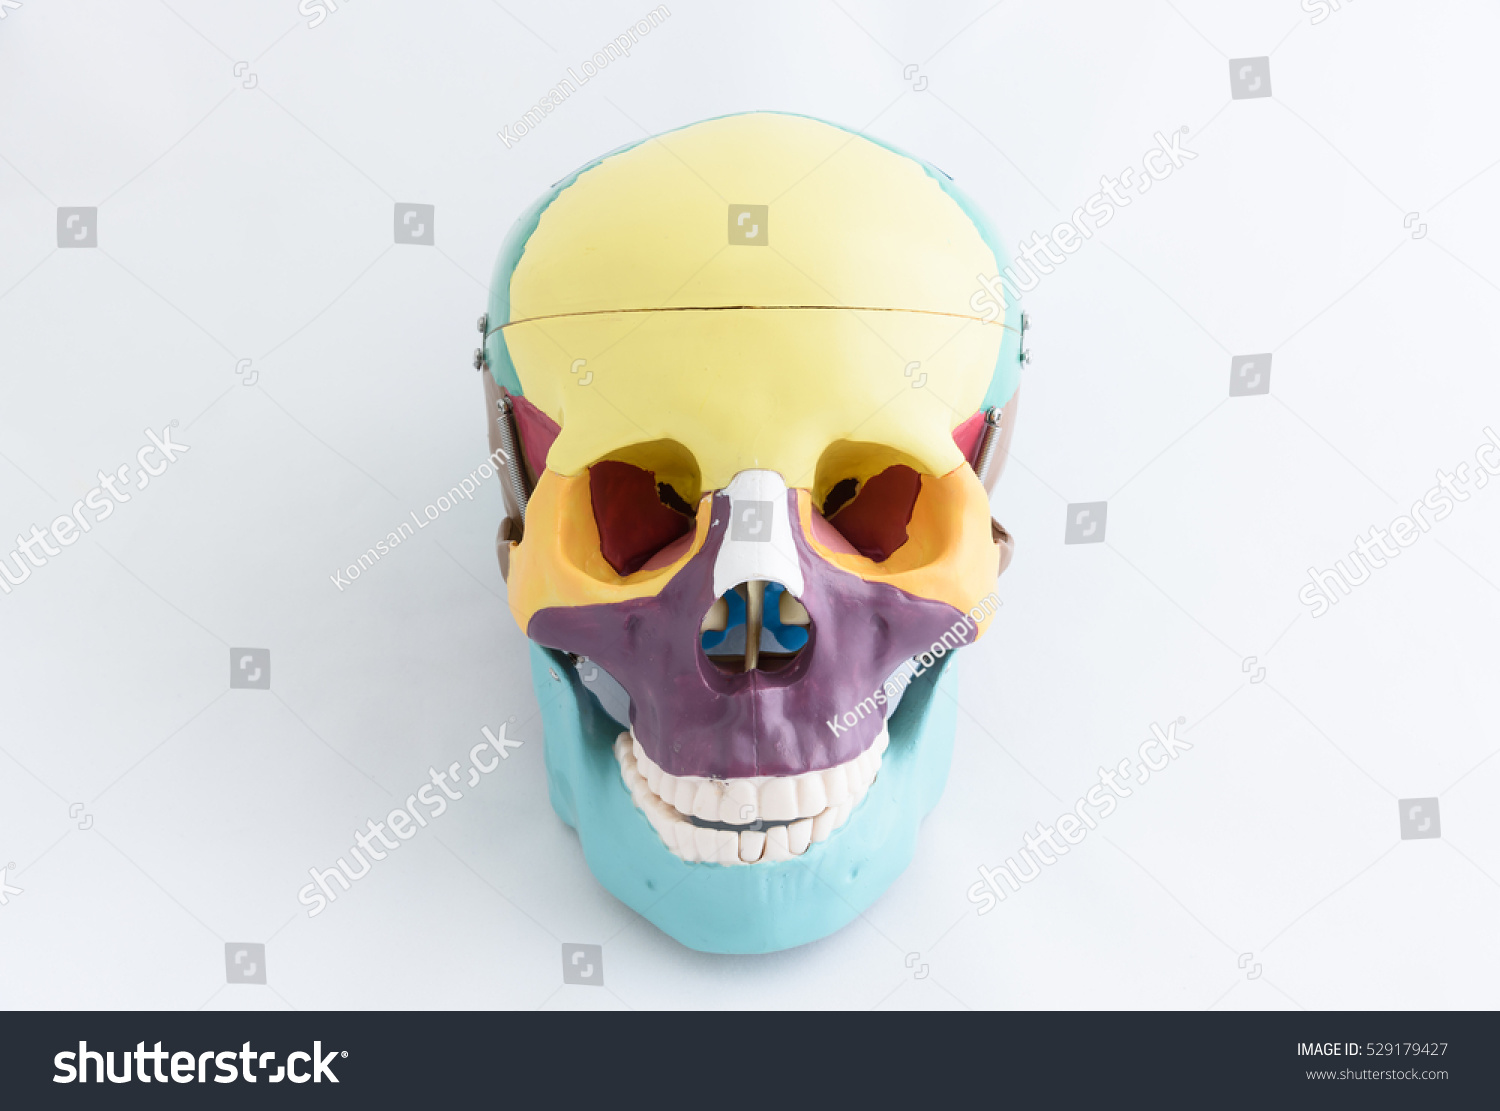 Anatomy Two Human Skull Model On Stock Photo Edit Now 529179427